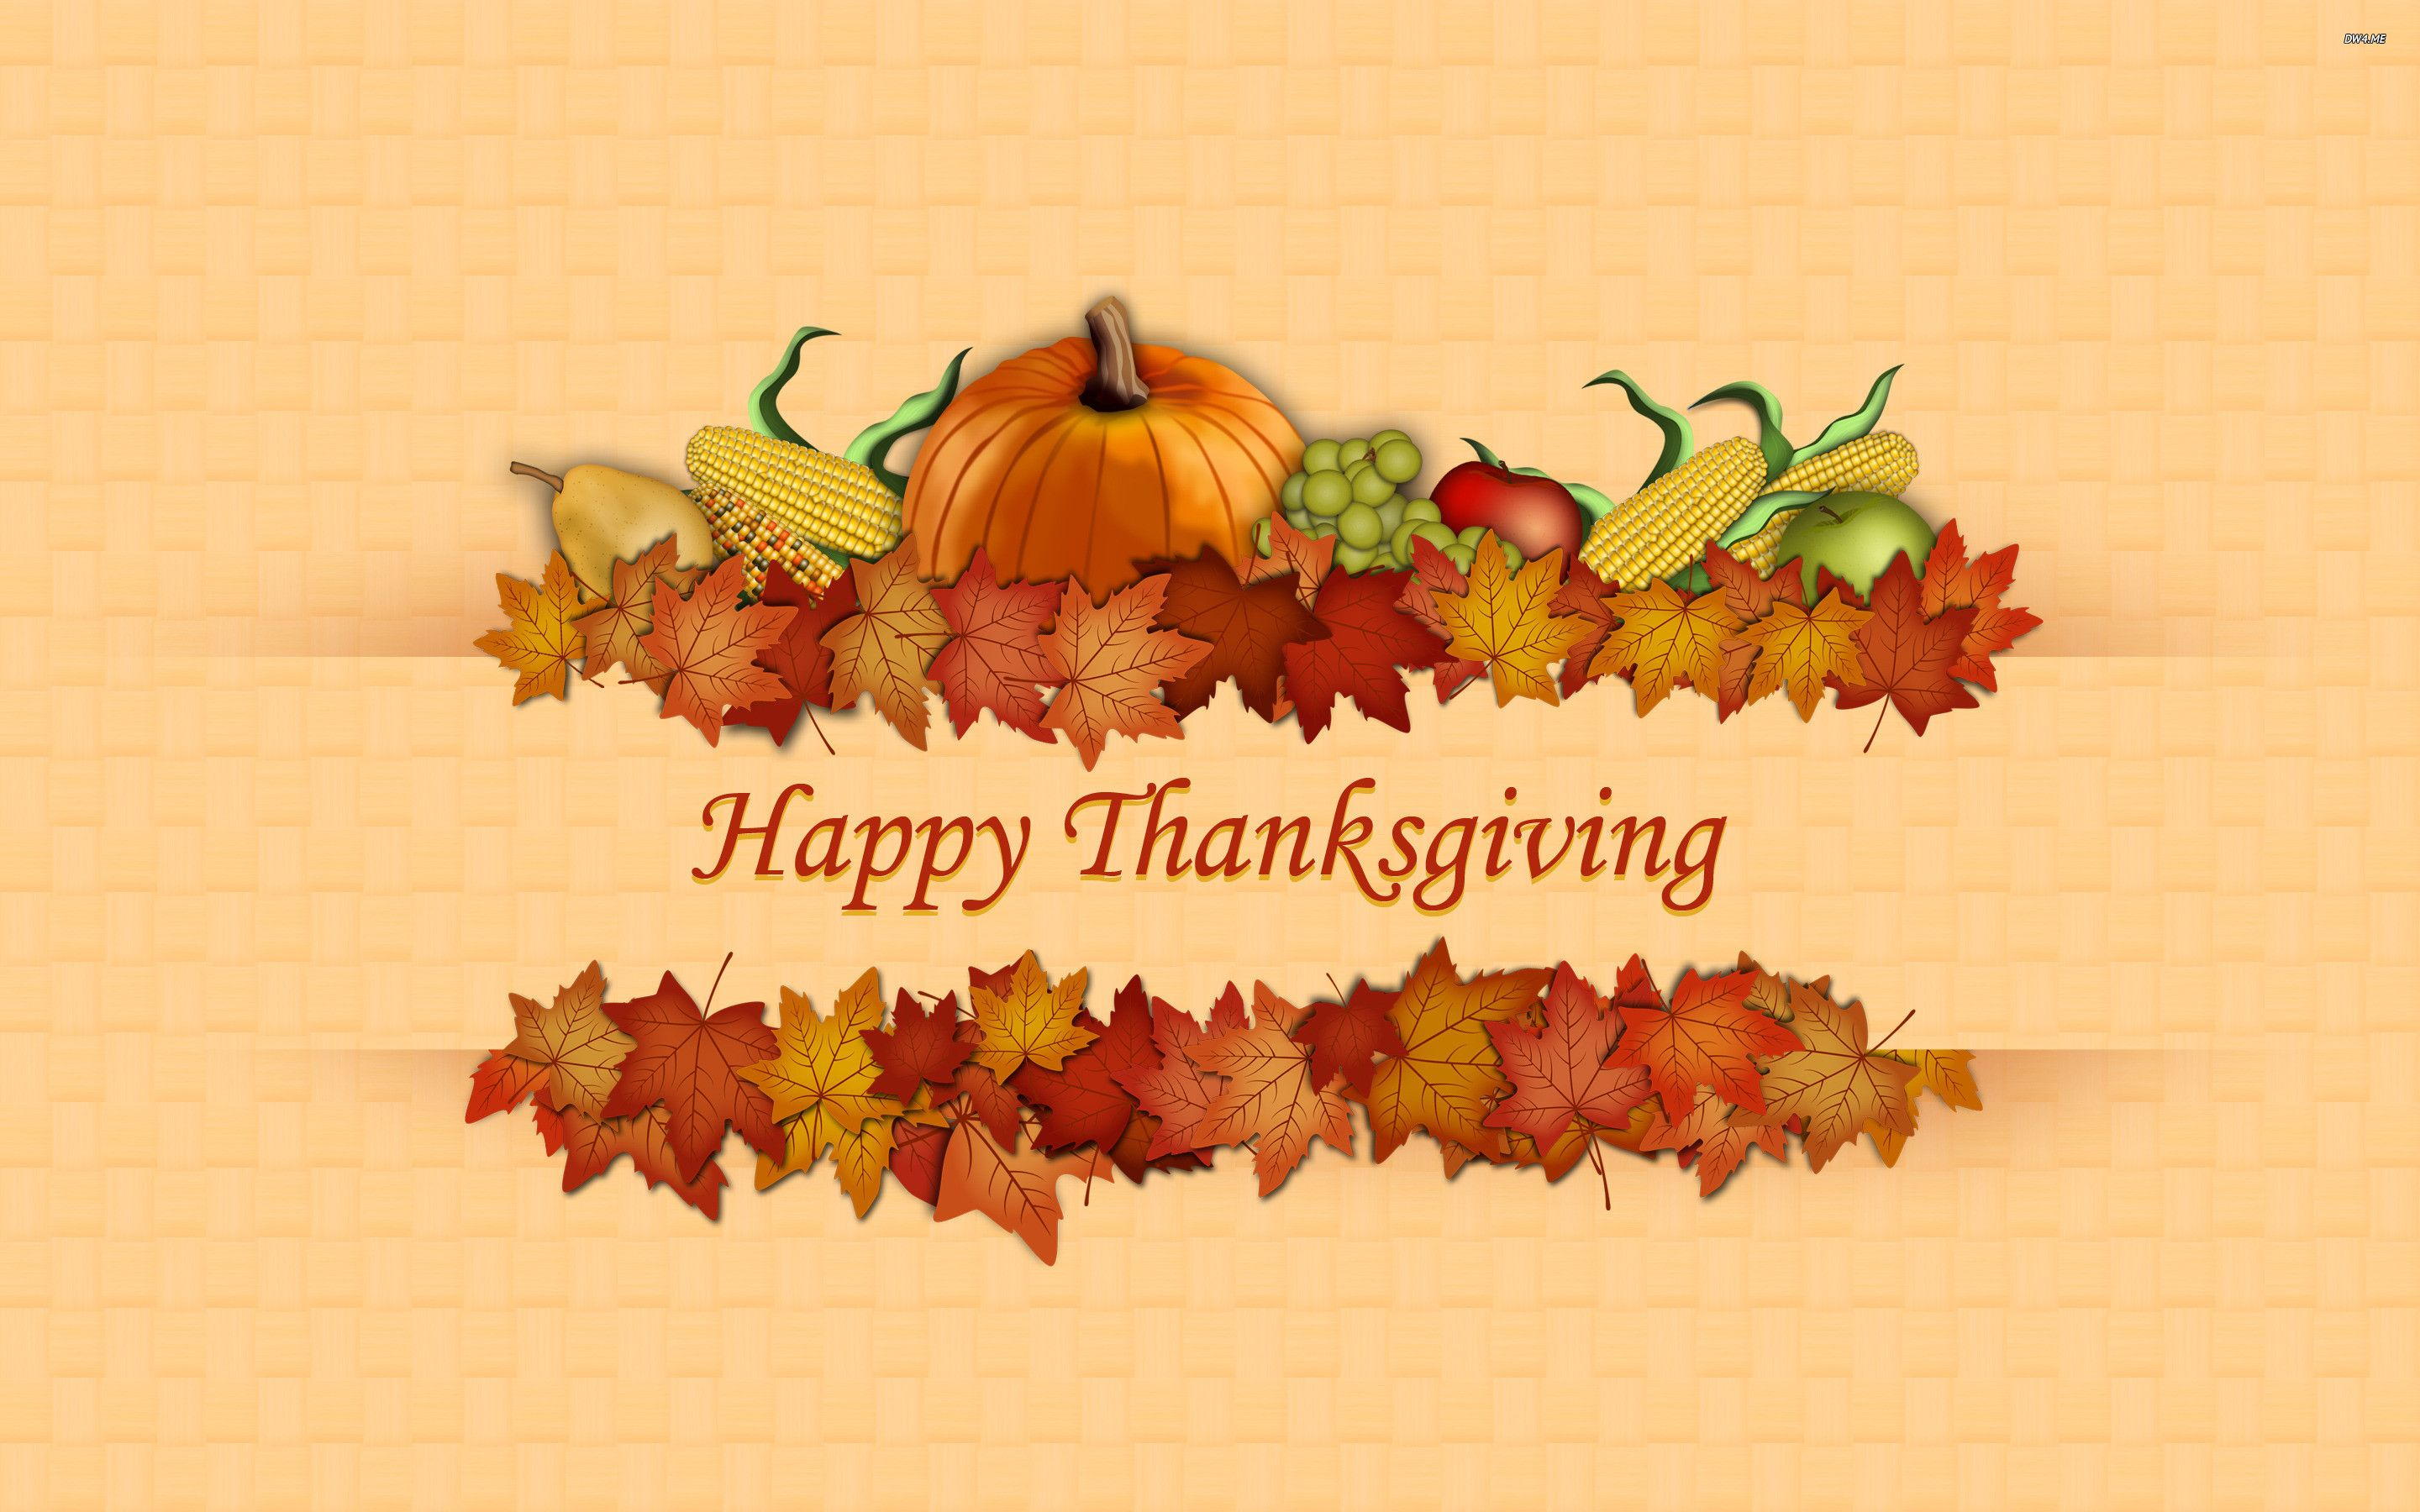 Best Happy Thanksgiving Wallpapers Download Thanksgiving